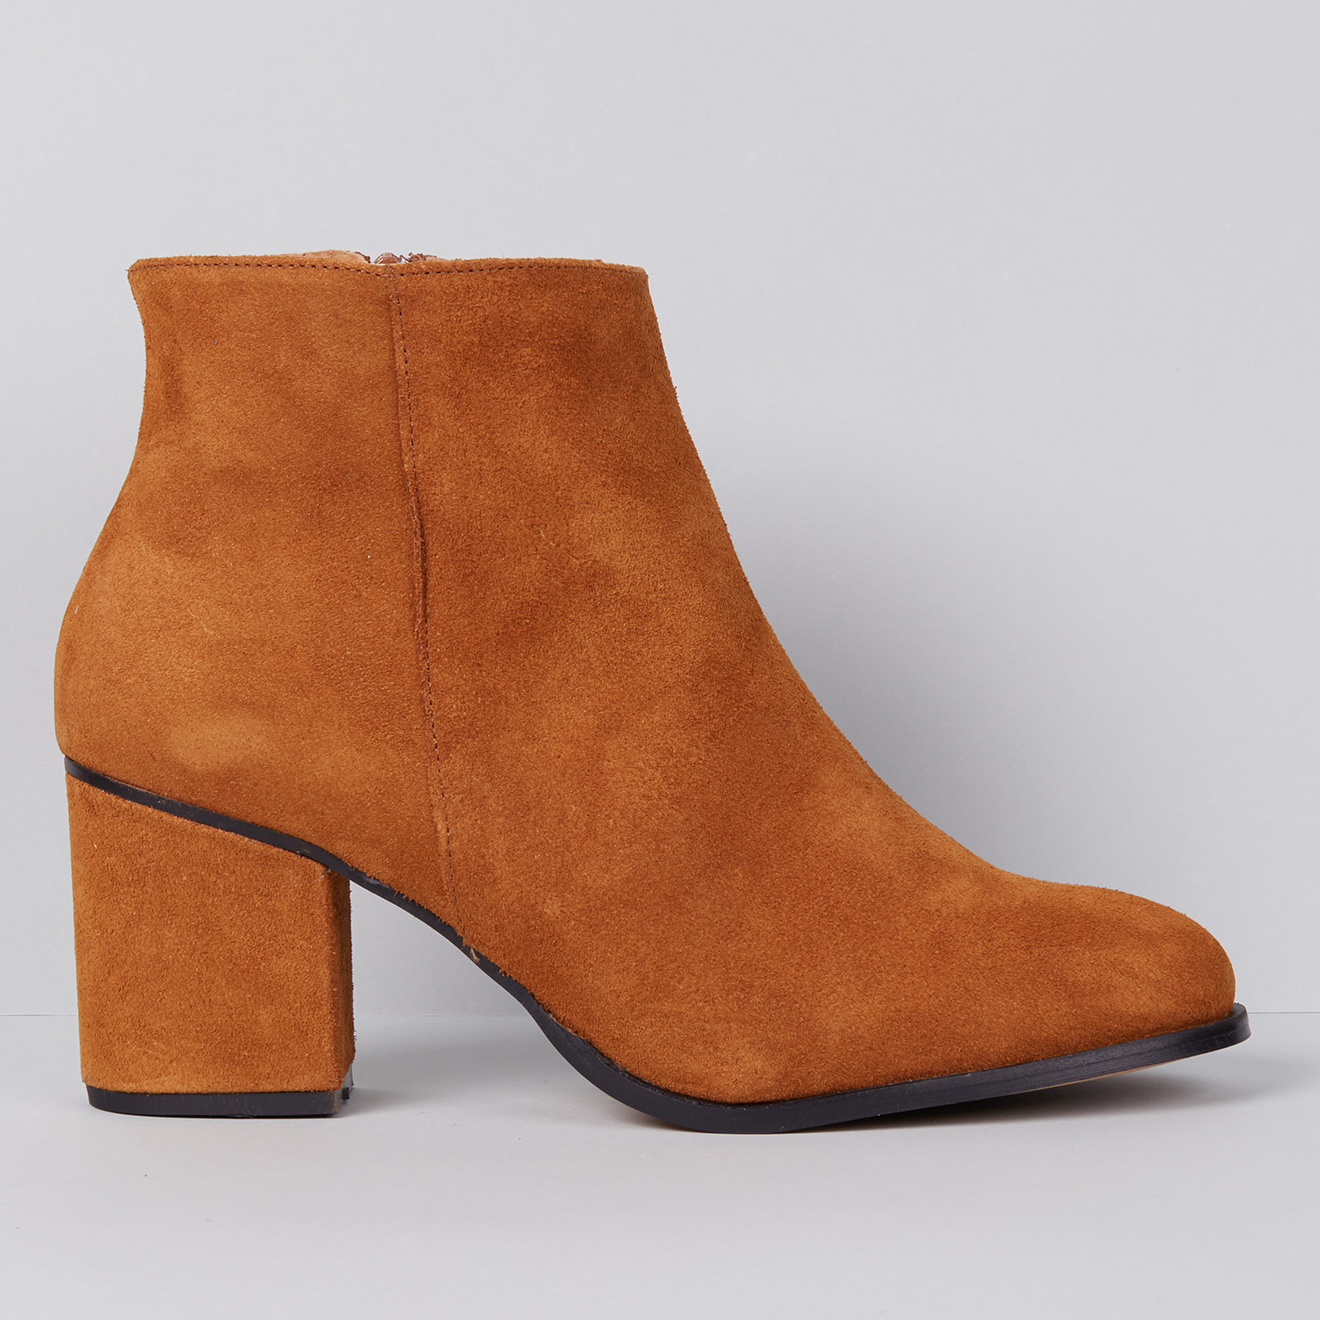 Bottines en Velours de Cuir - Talon 7.5 cm - Apologie - Modalova